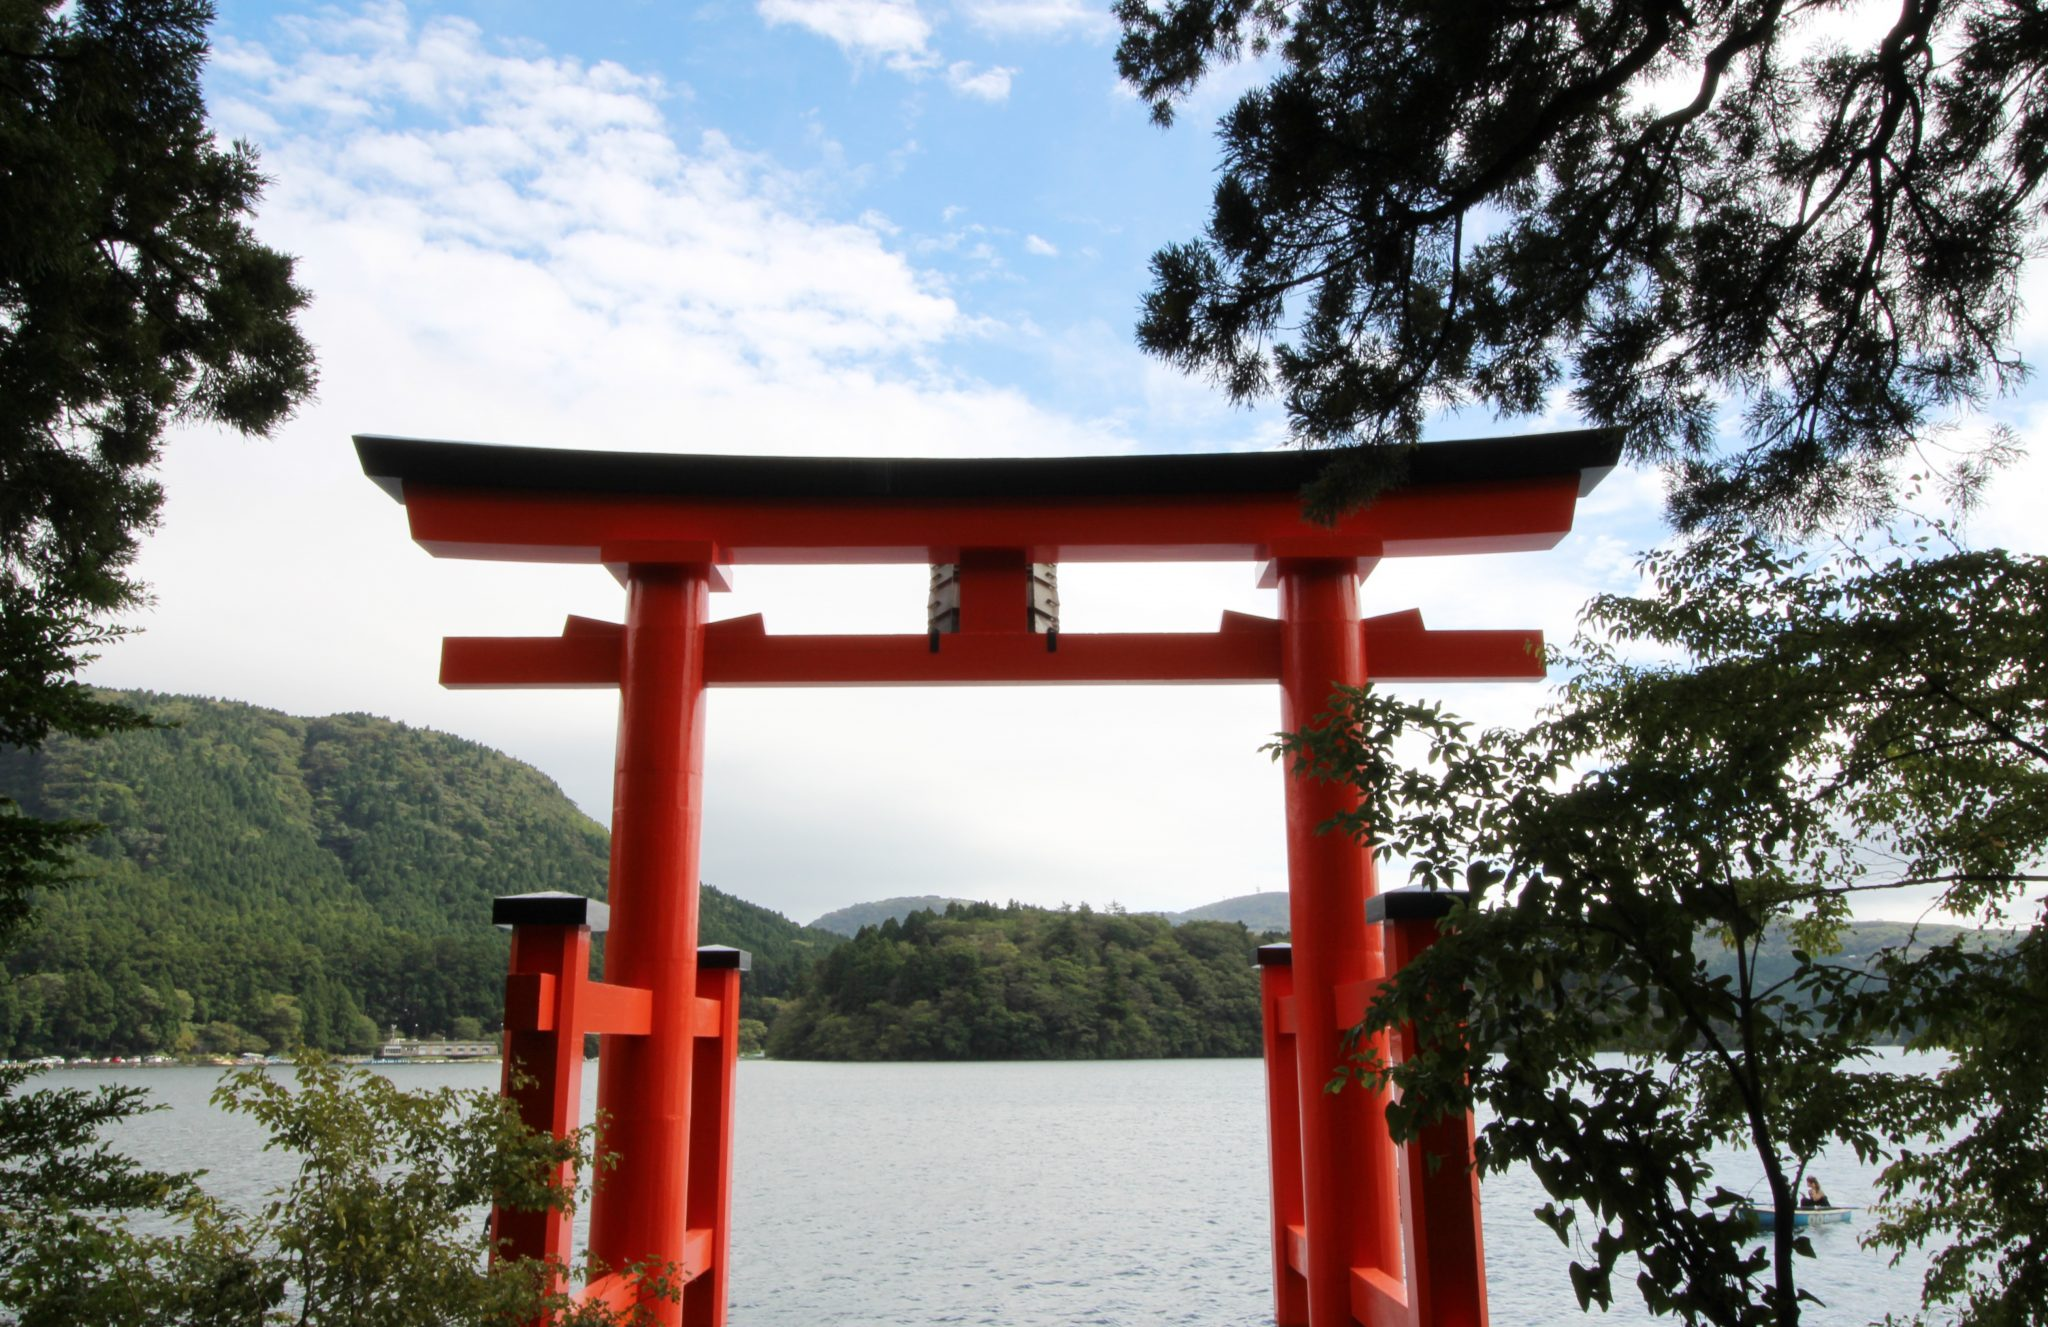 Hakone, Japan oramge Torii shrine